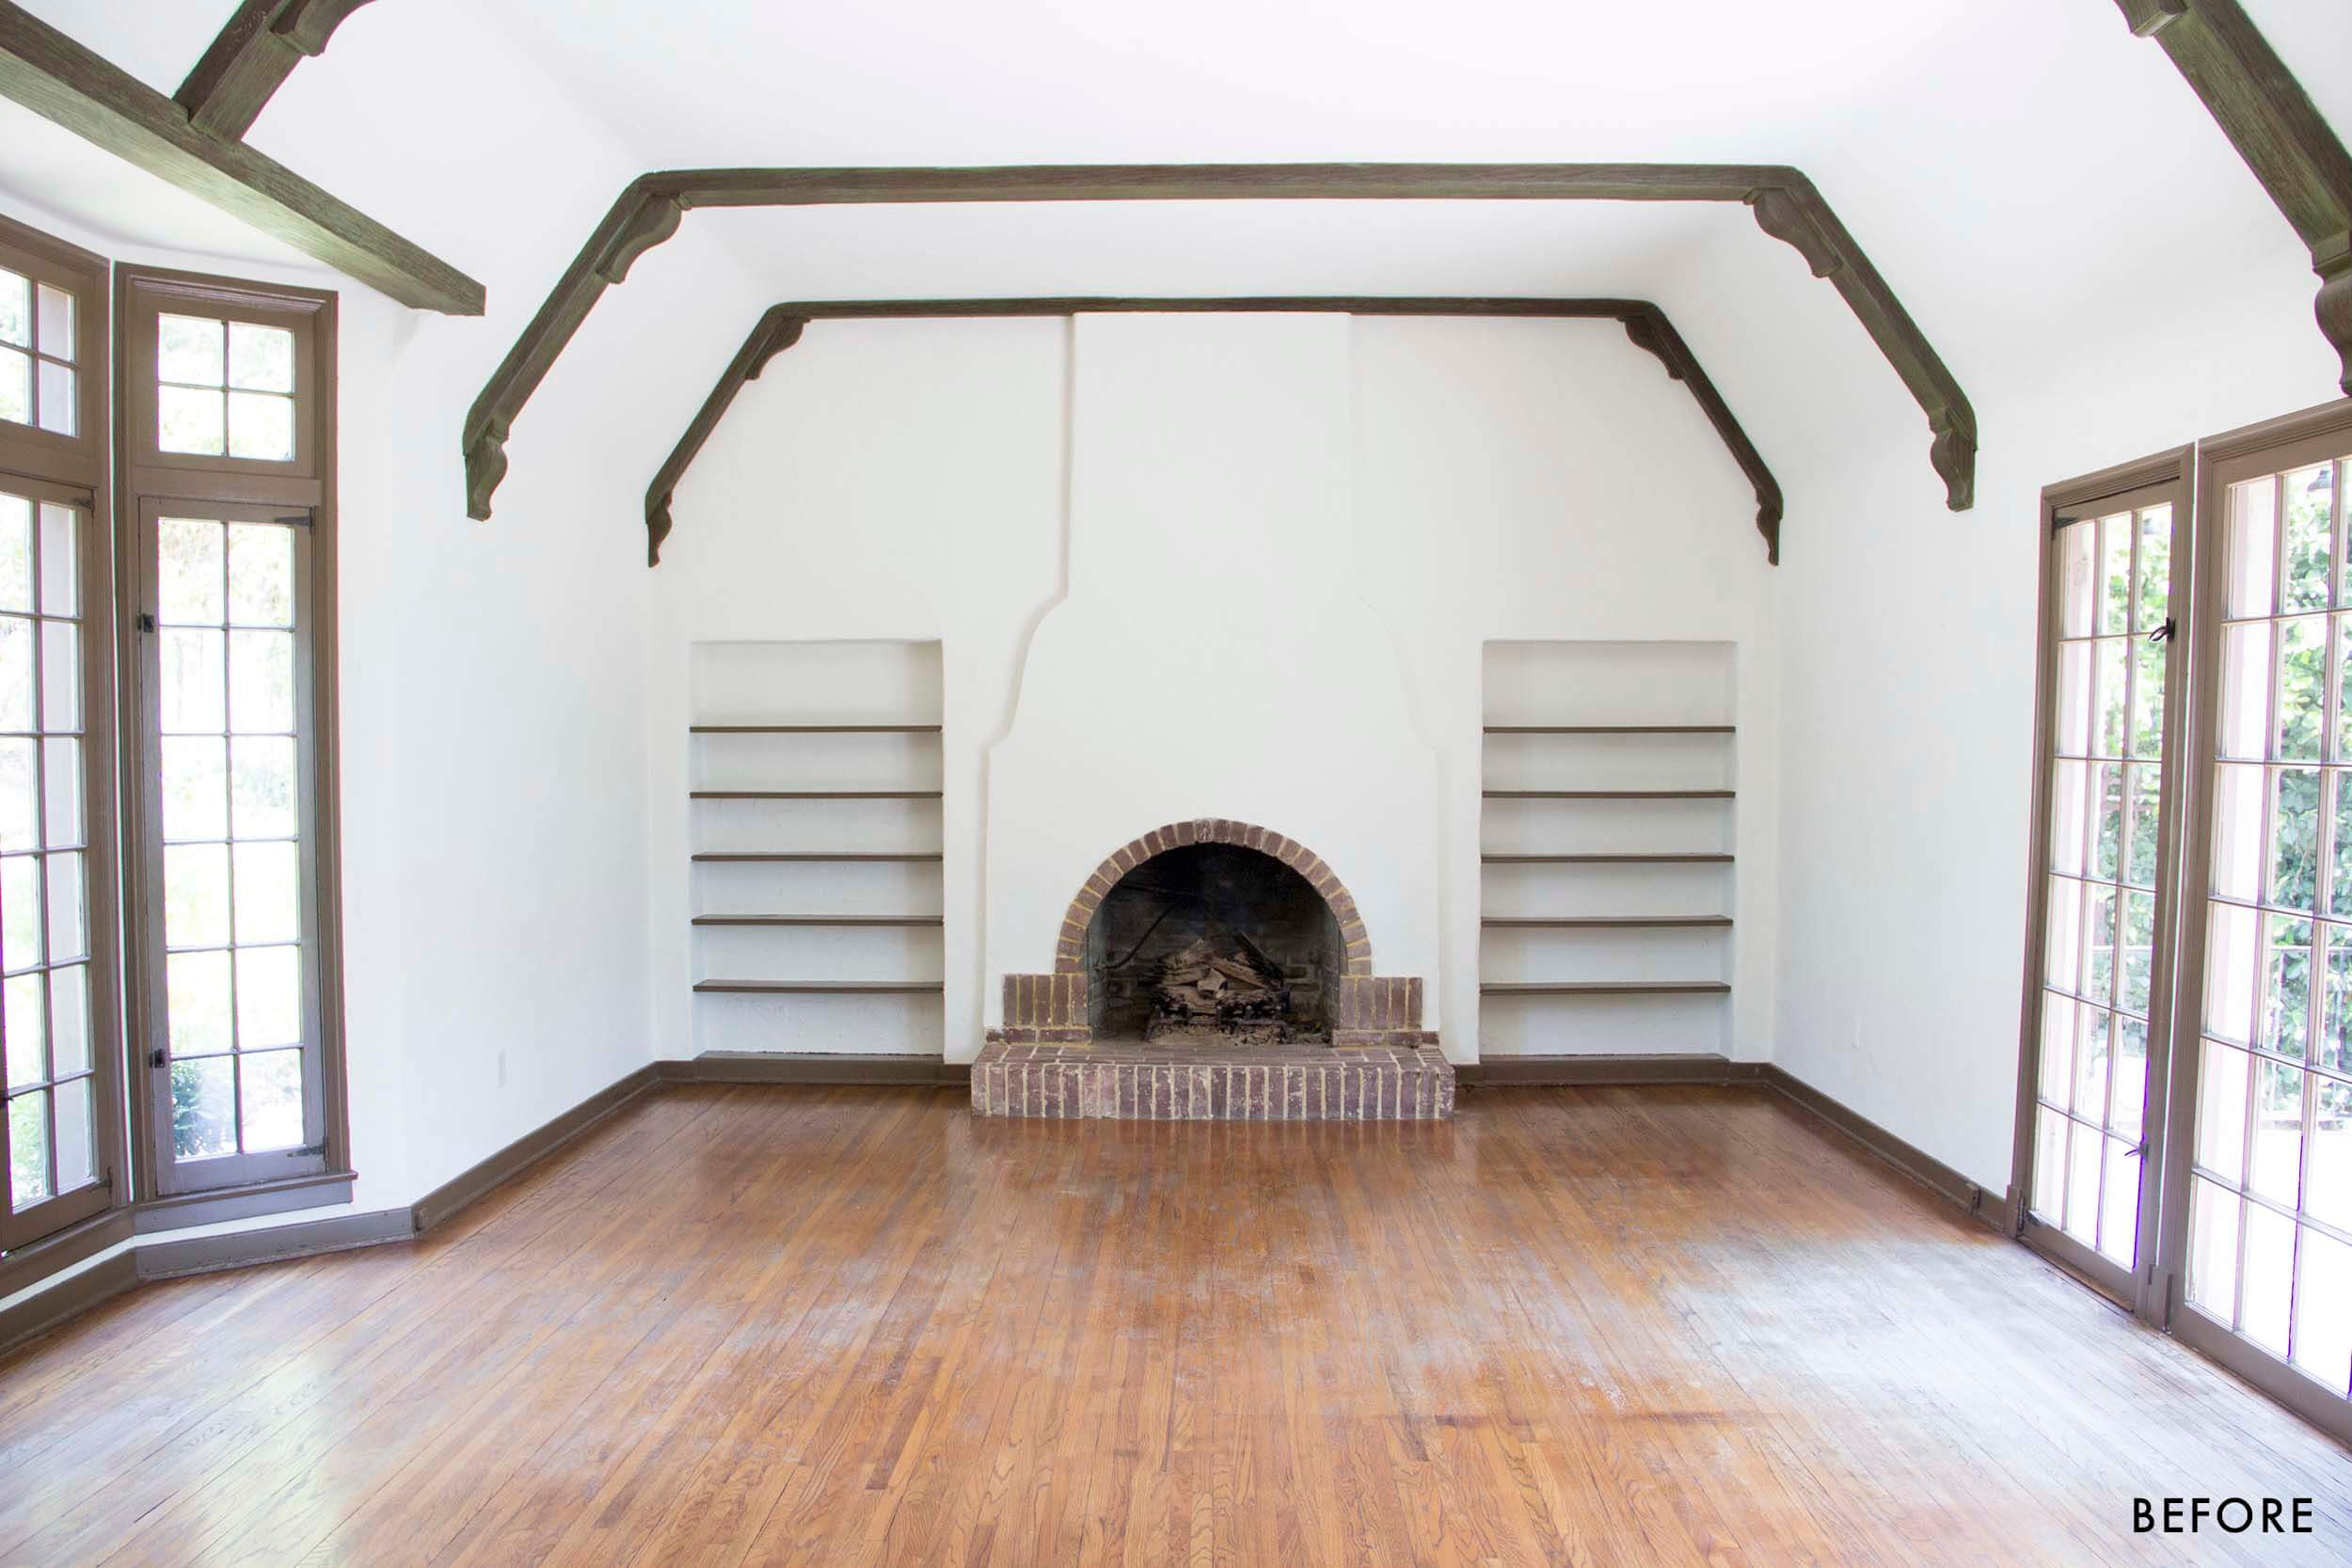 cost to refinish hardwood floors denver of how we refinished our wood beams emily henderson with emily henderson waverly living room new before emily henderson waverly living room before closeup